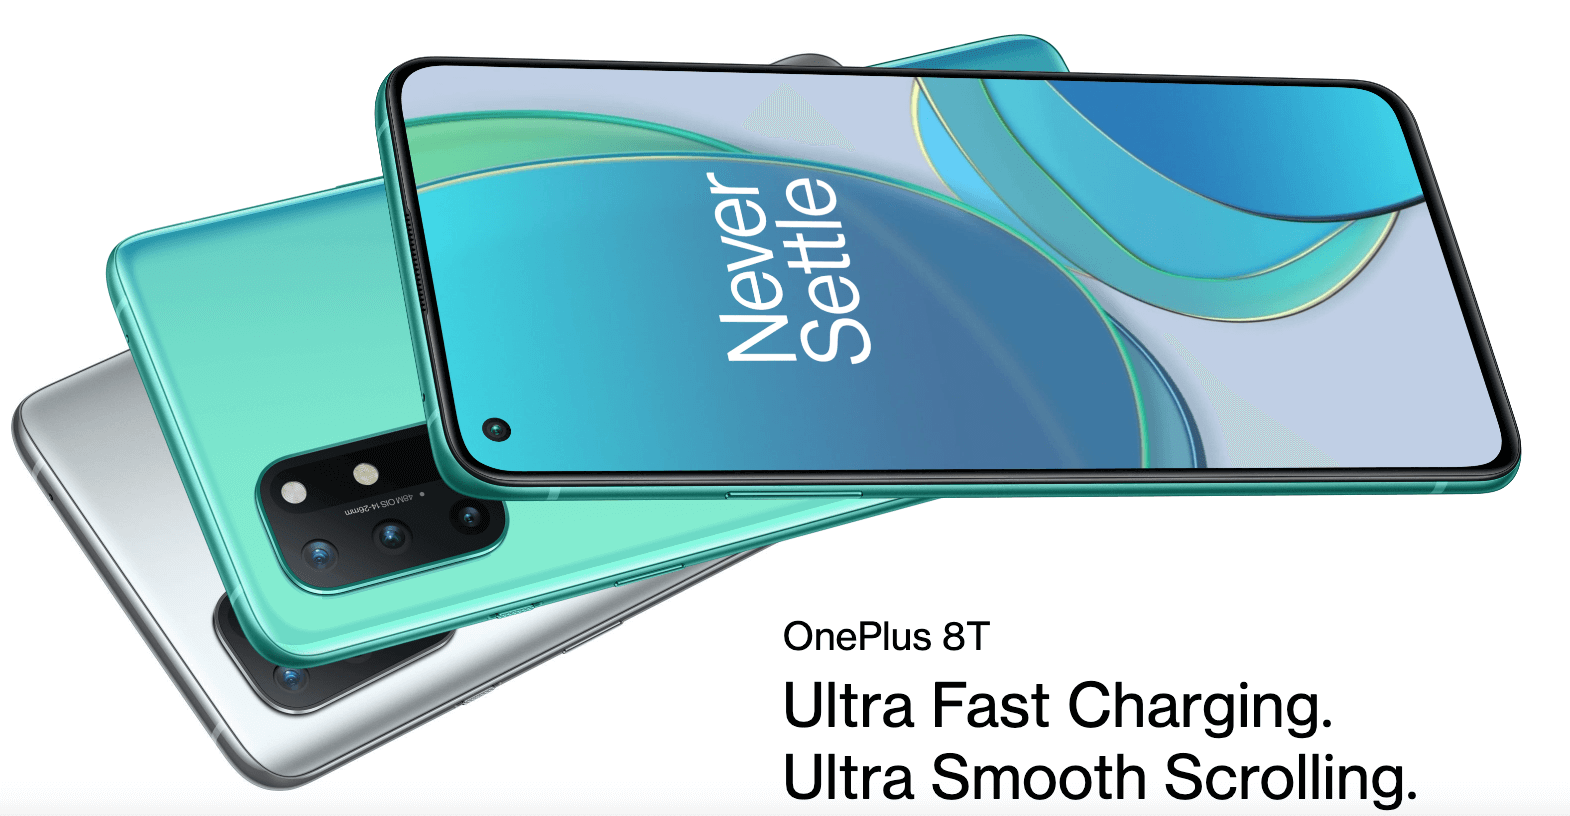 OnePlus 8T Review: Great Phone But Not Great Improvements